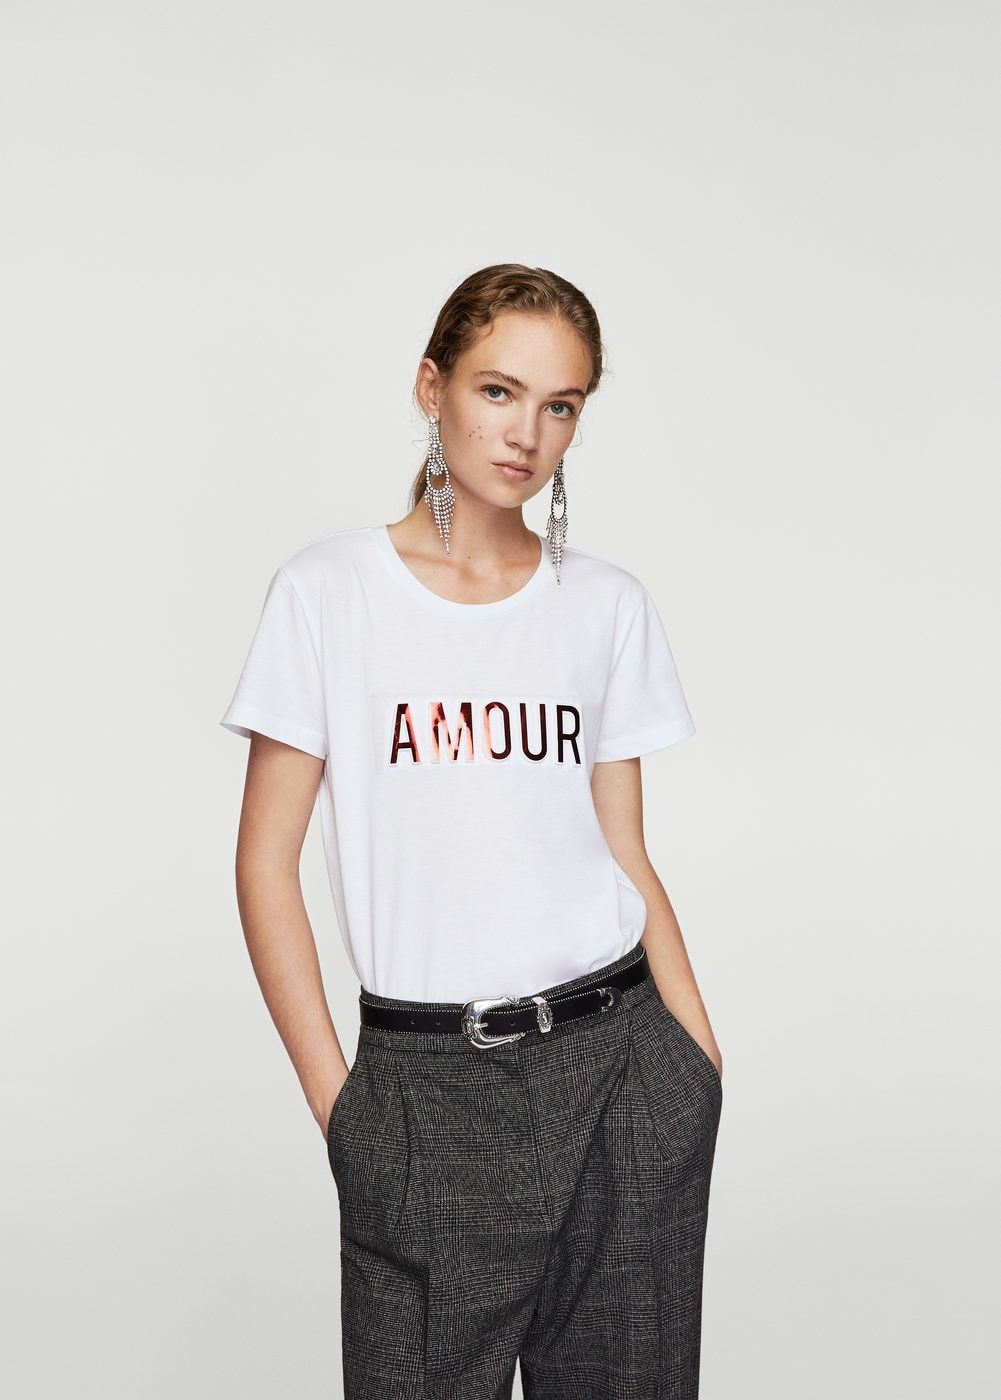 5261a3be5 Camiseta texto relieve - Mujer en 2019 | Camisetas | Camisetas ...